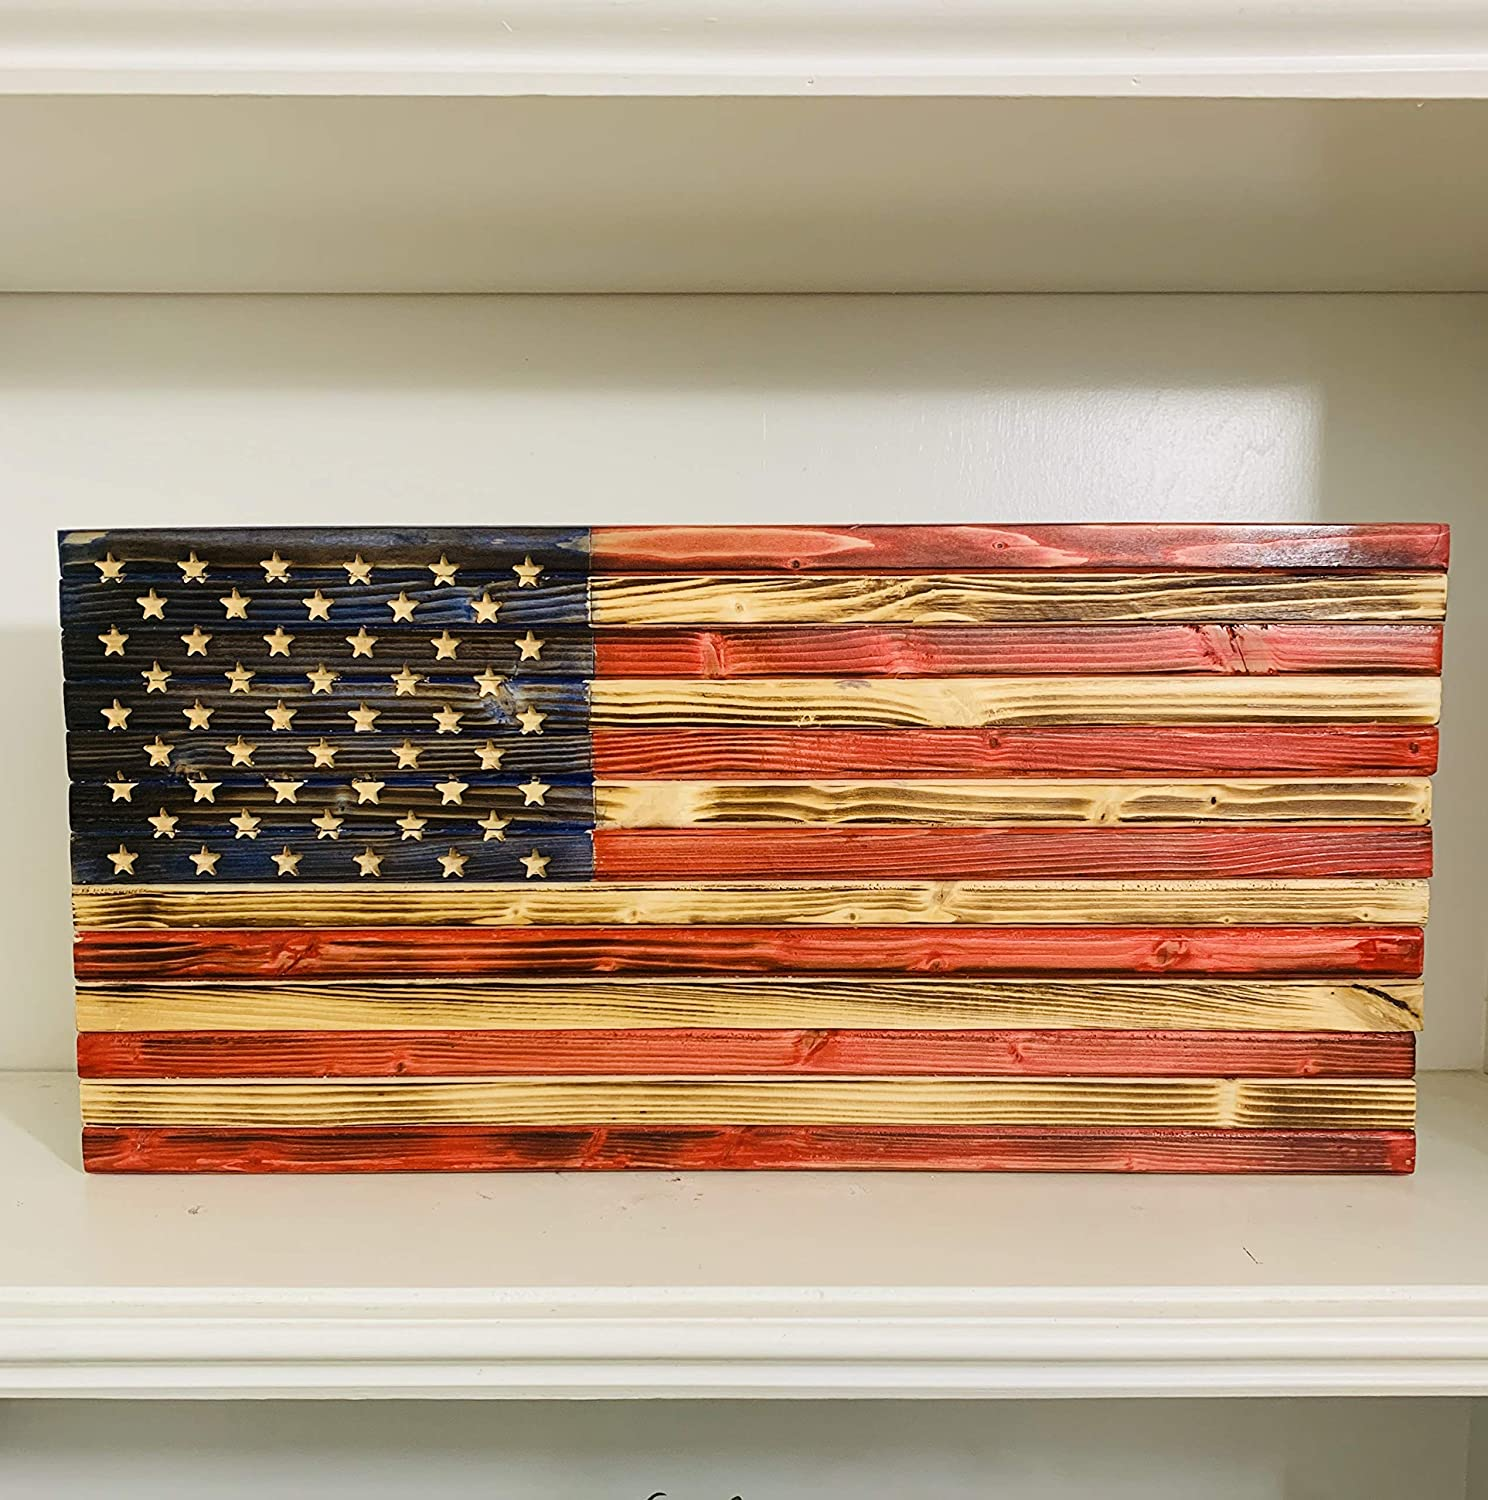 Rustic Handmade Wooden American Flag Made of Natural Pine Wood in the USA, indoor/Outdoor Patriotic Home Decor 18.5 X 9 X 1.5 Inch Ideal for Home or Office